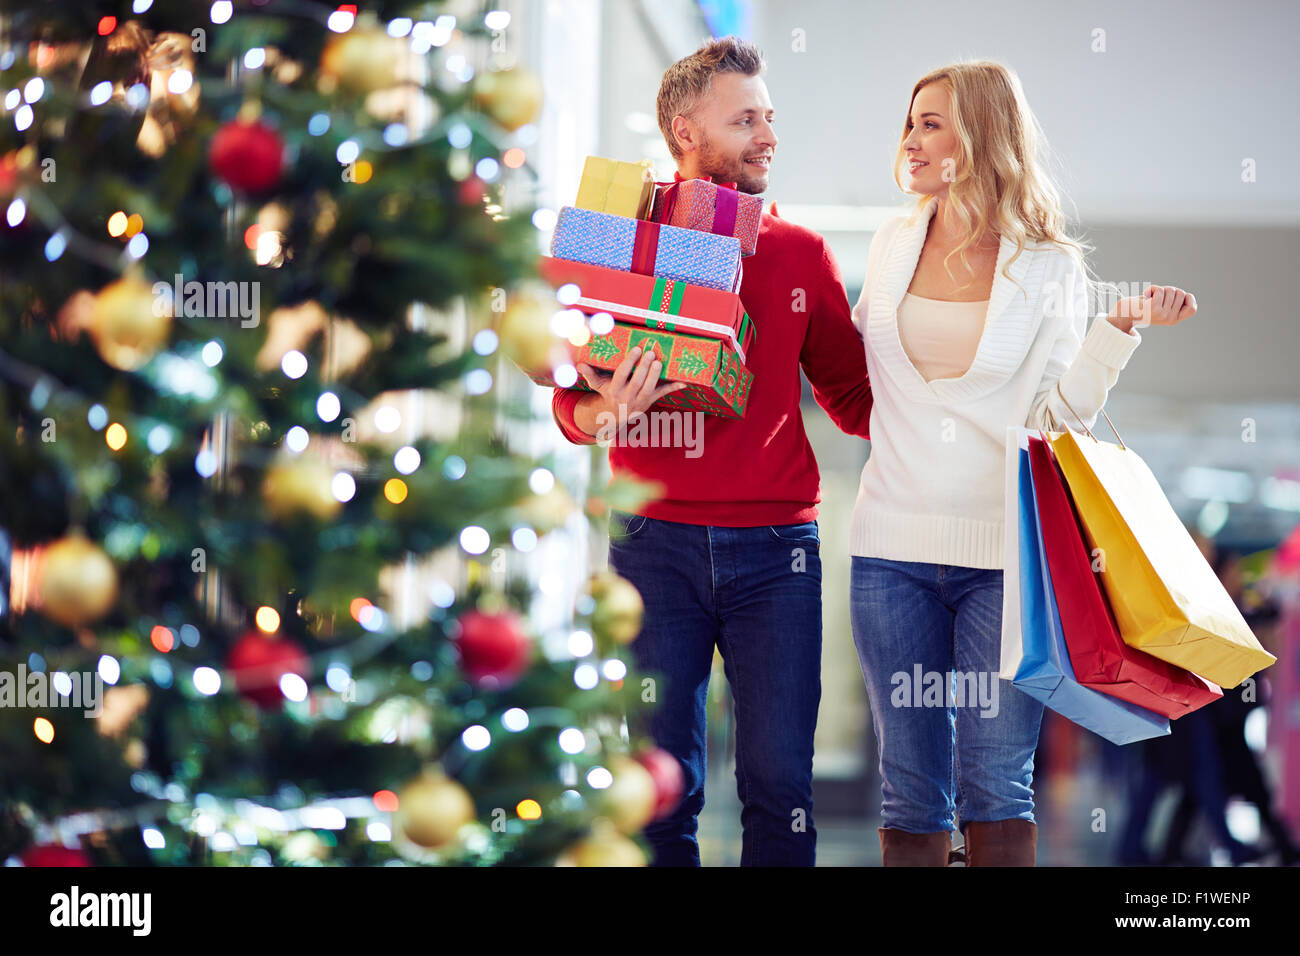 Affectionate couple carrying Christmas presents while shopping in the mall - Stock Image